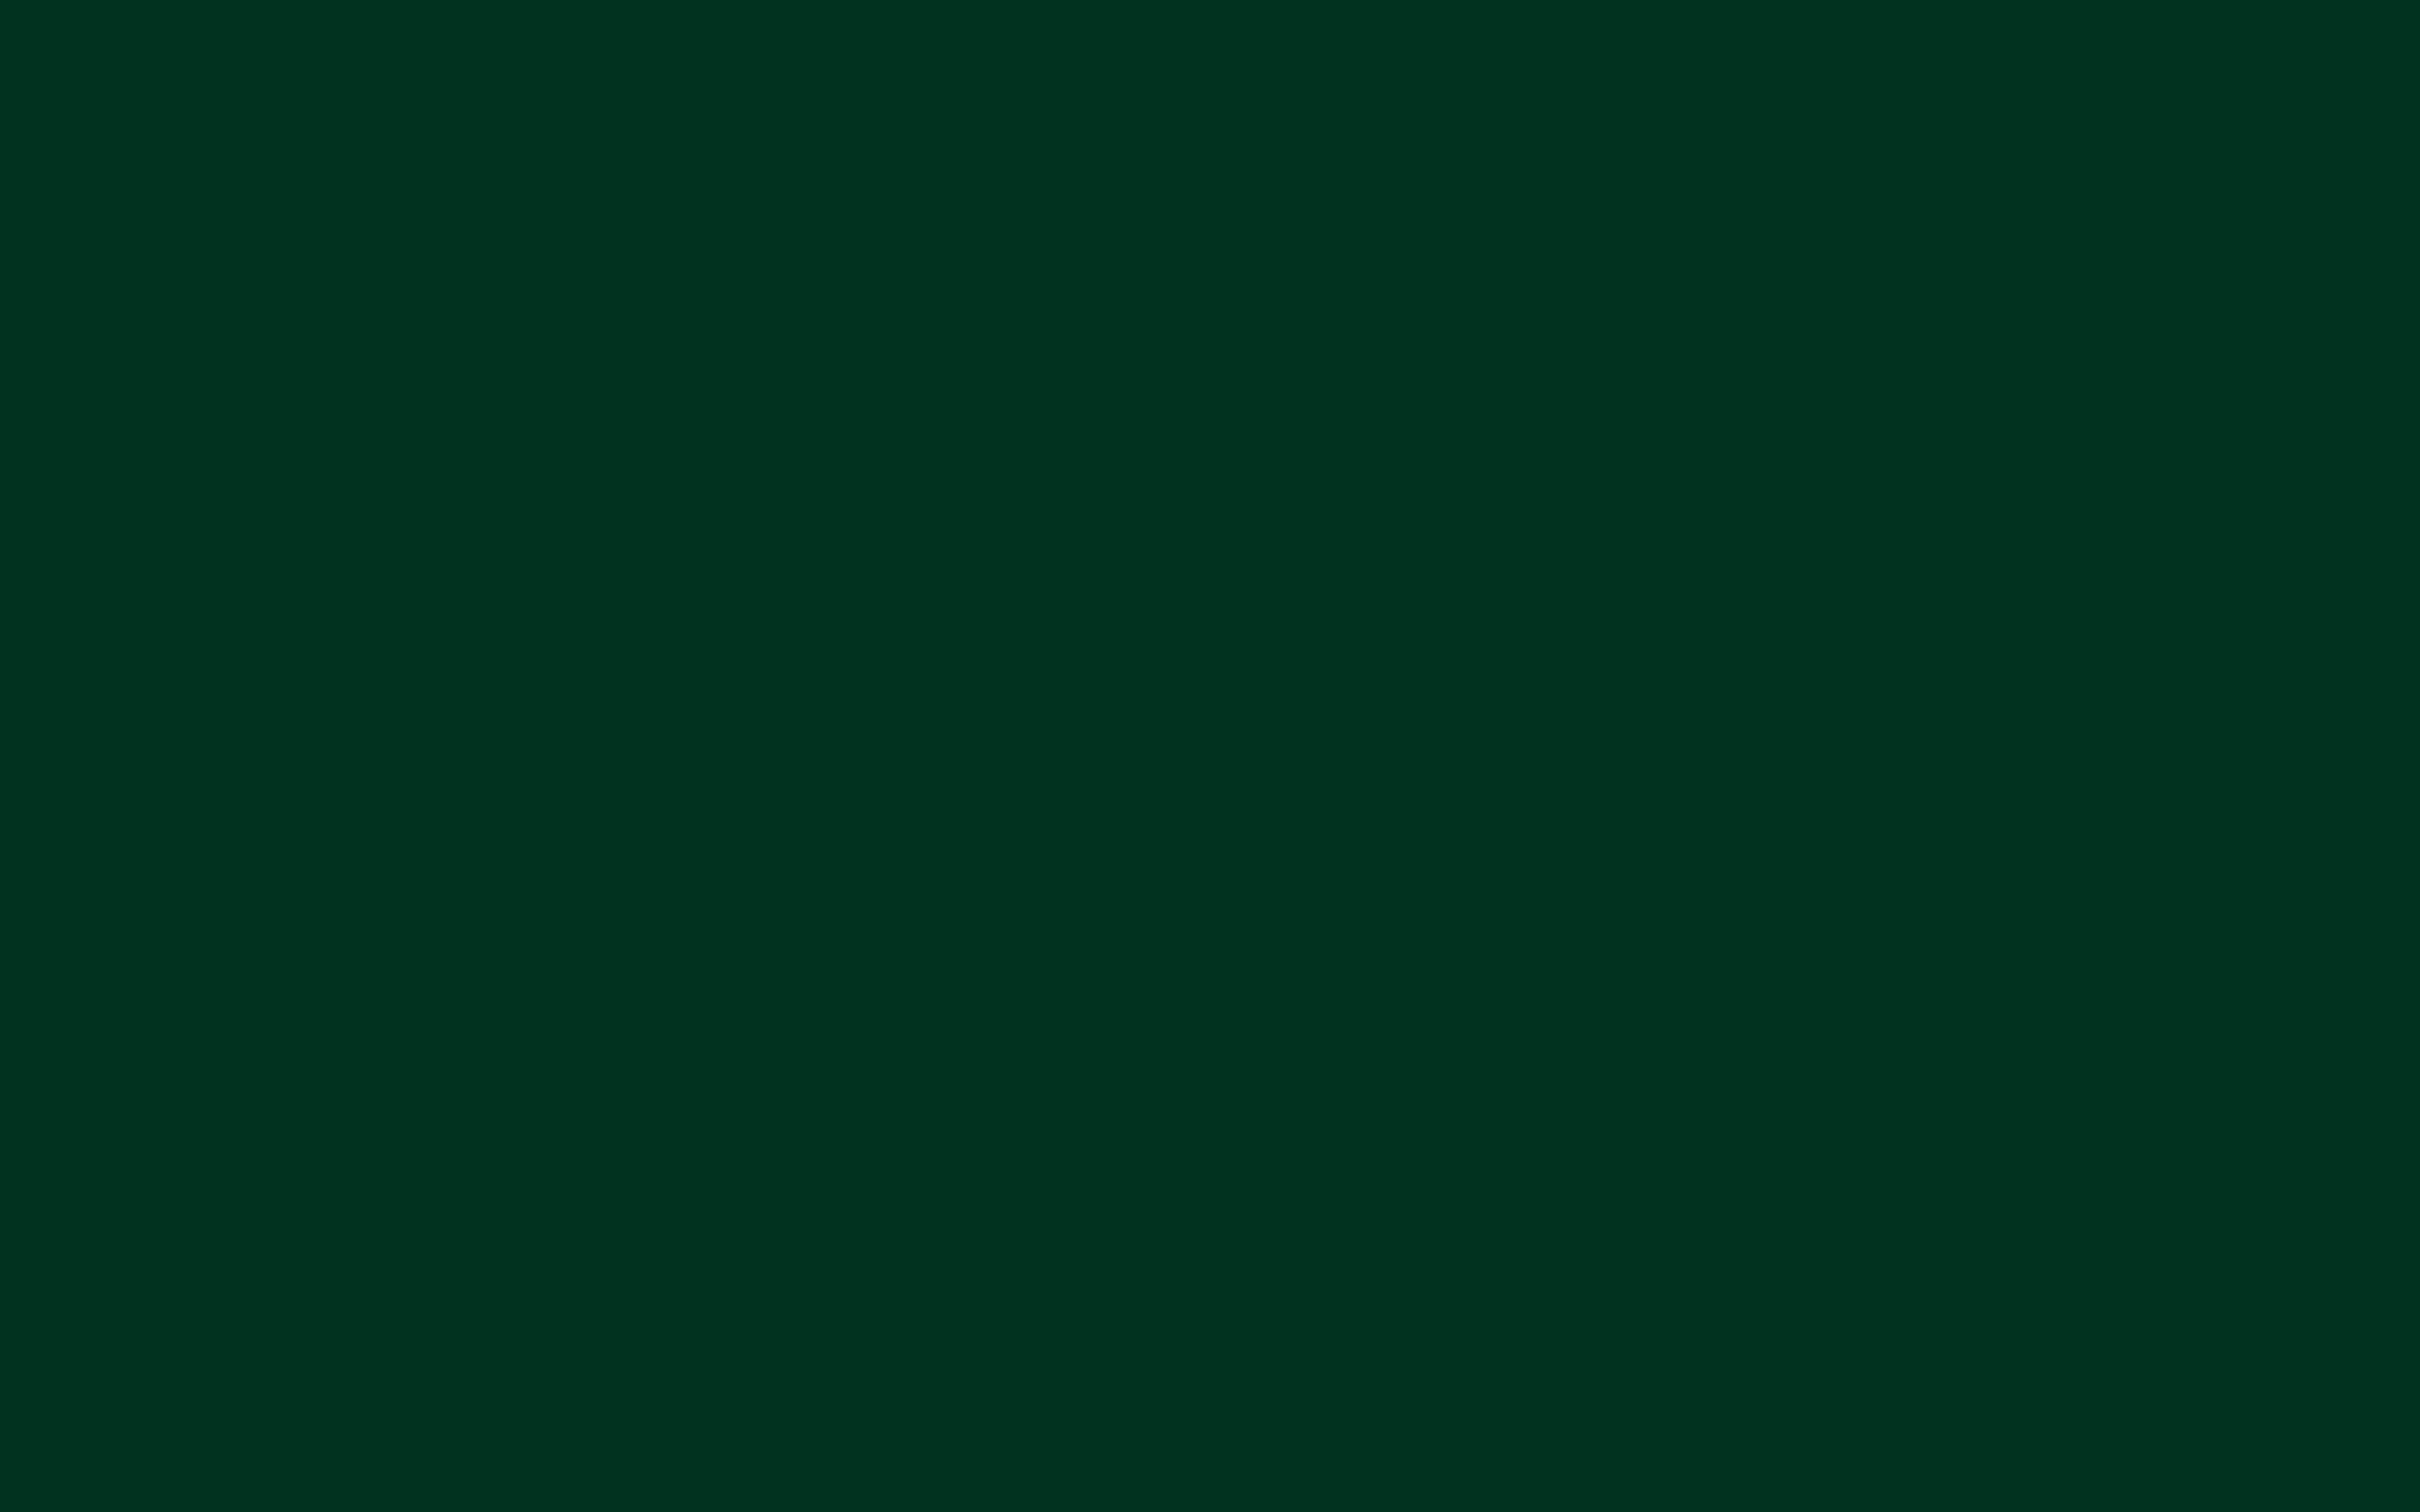 background color solid green dark images 2880x1800 2880x1800